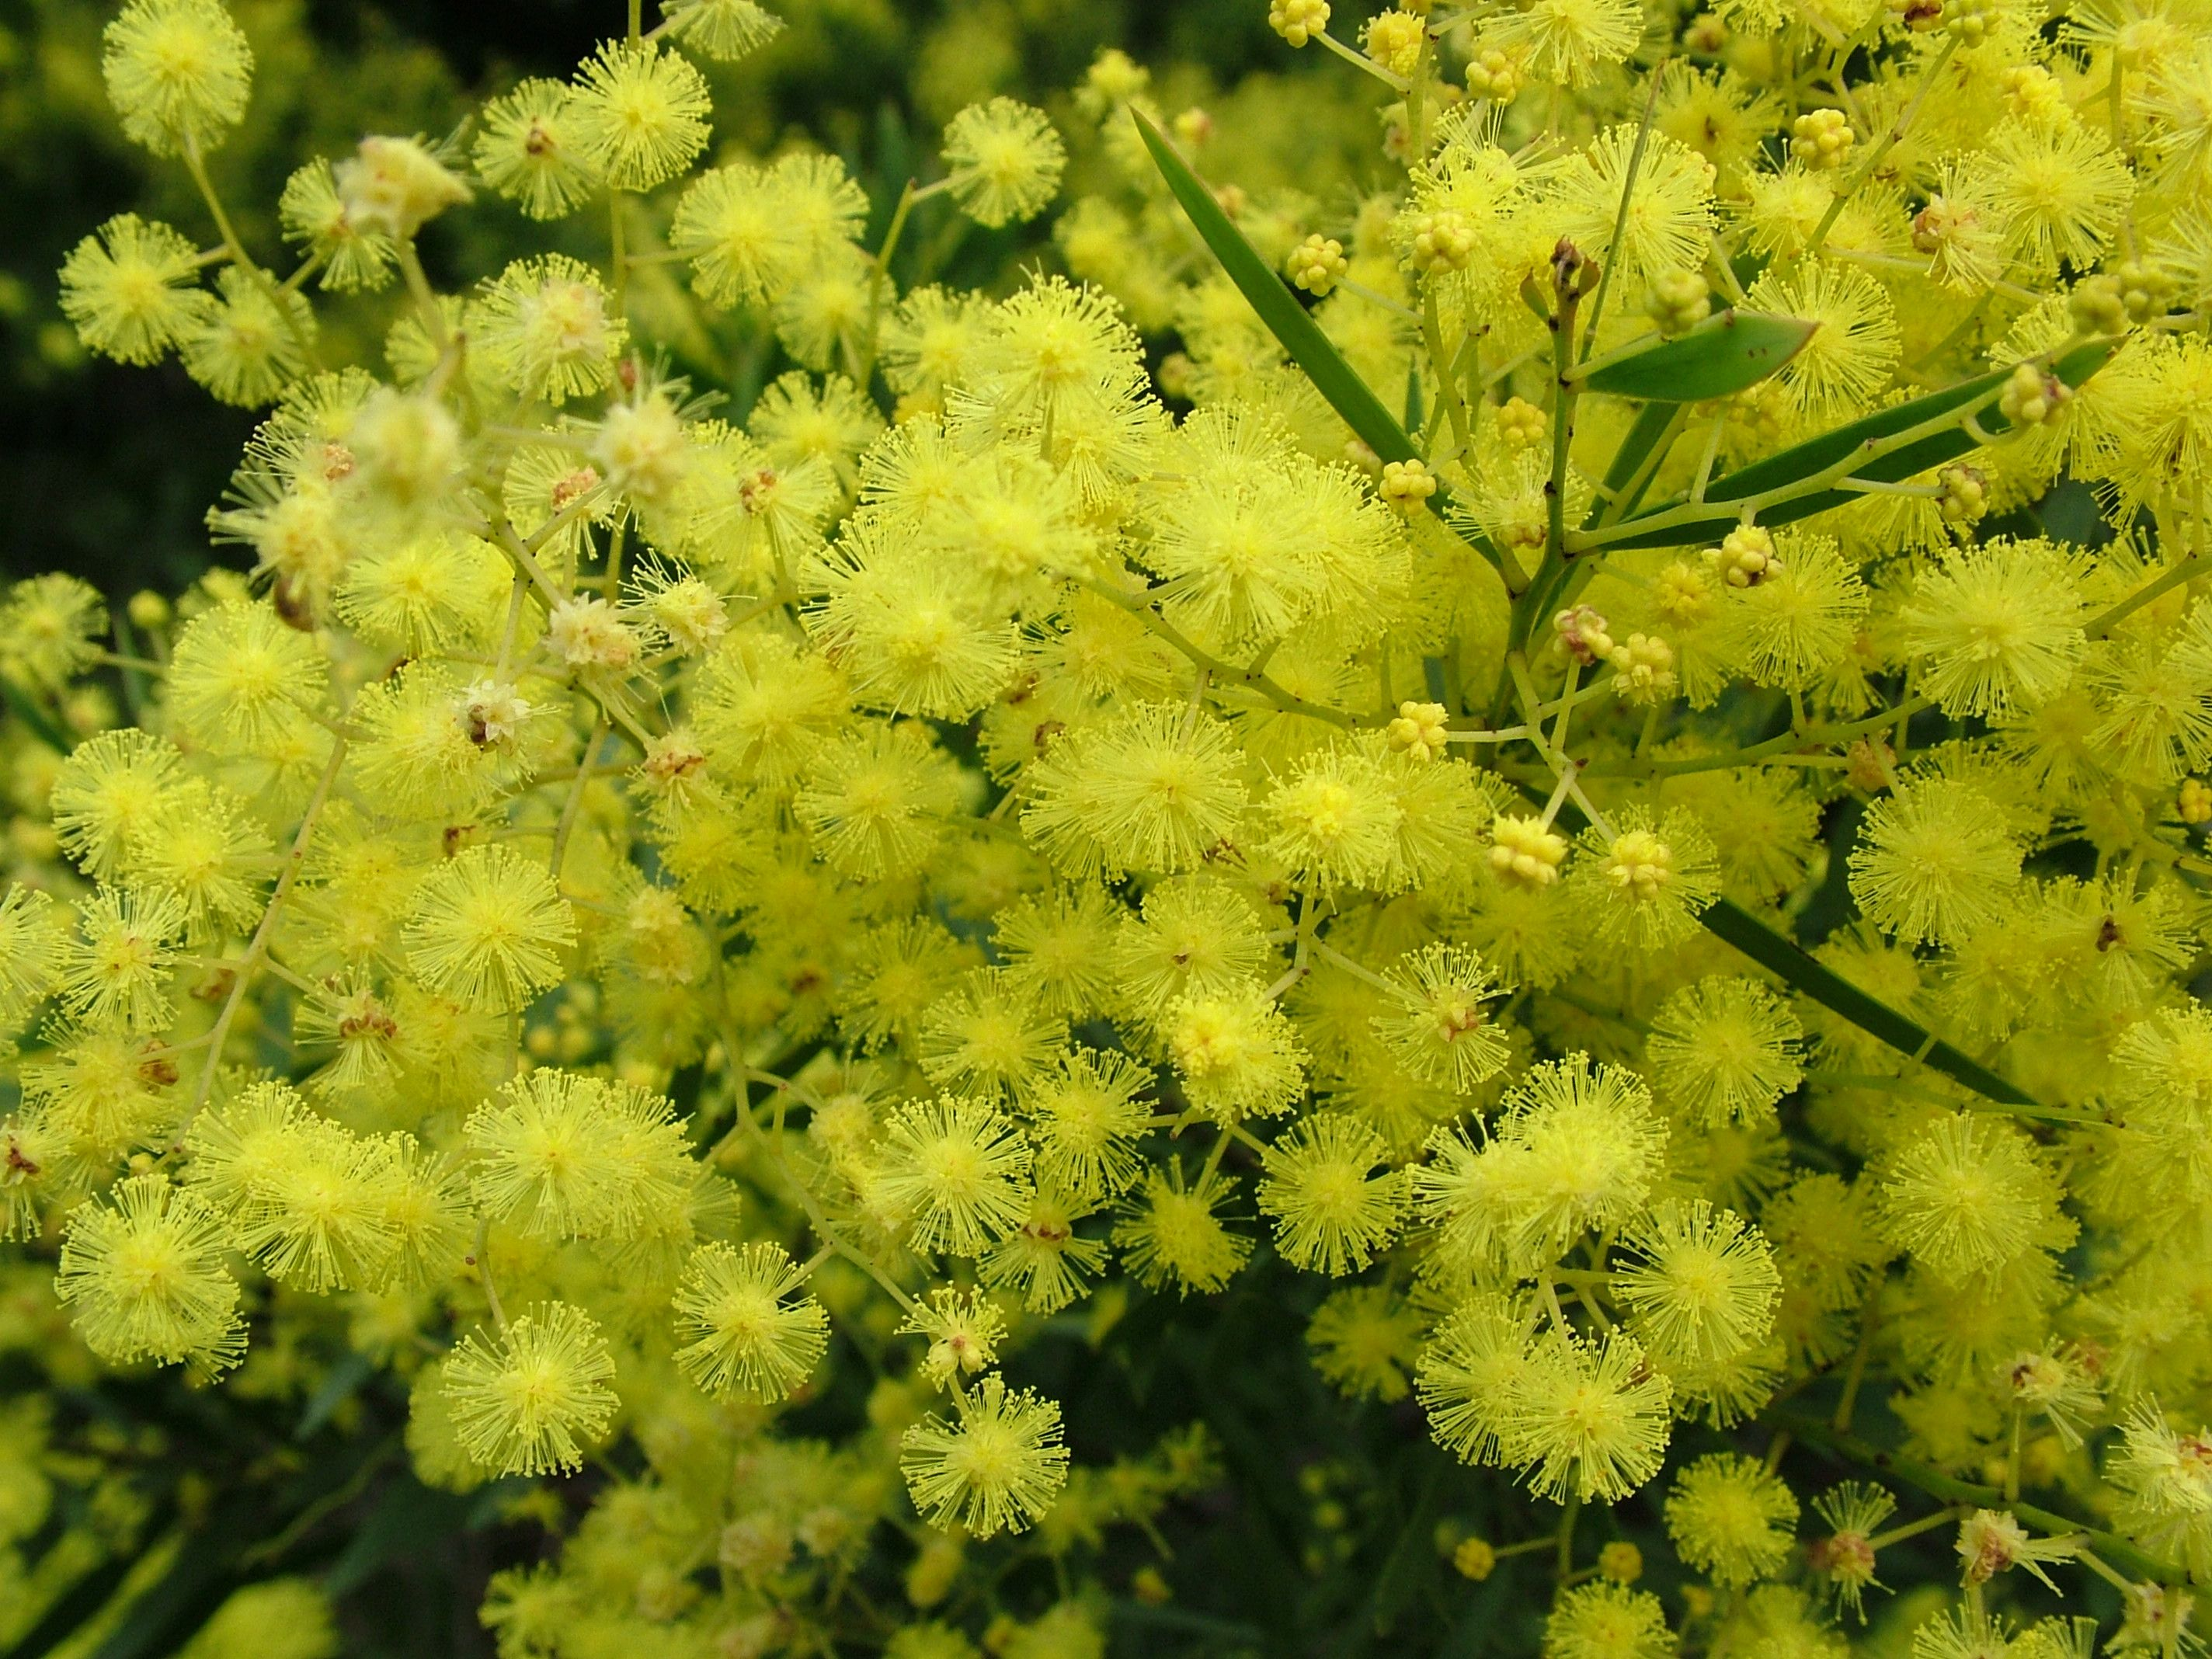 Acacia fimbriata Fringed wattle is a small tree growing up to 6m